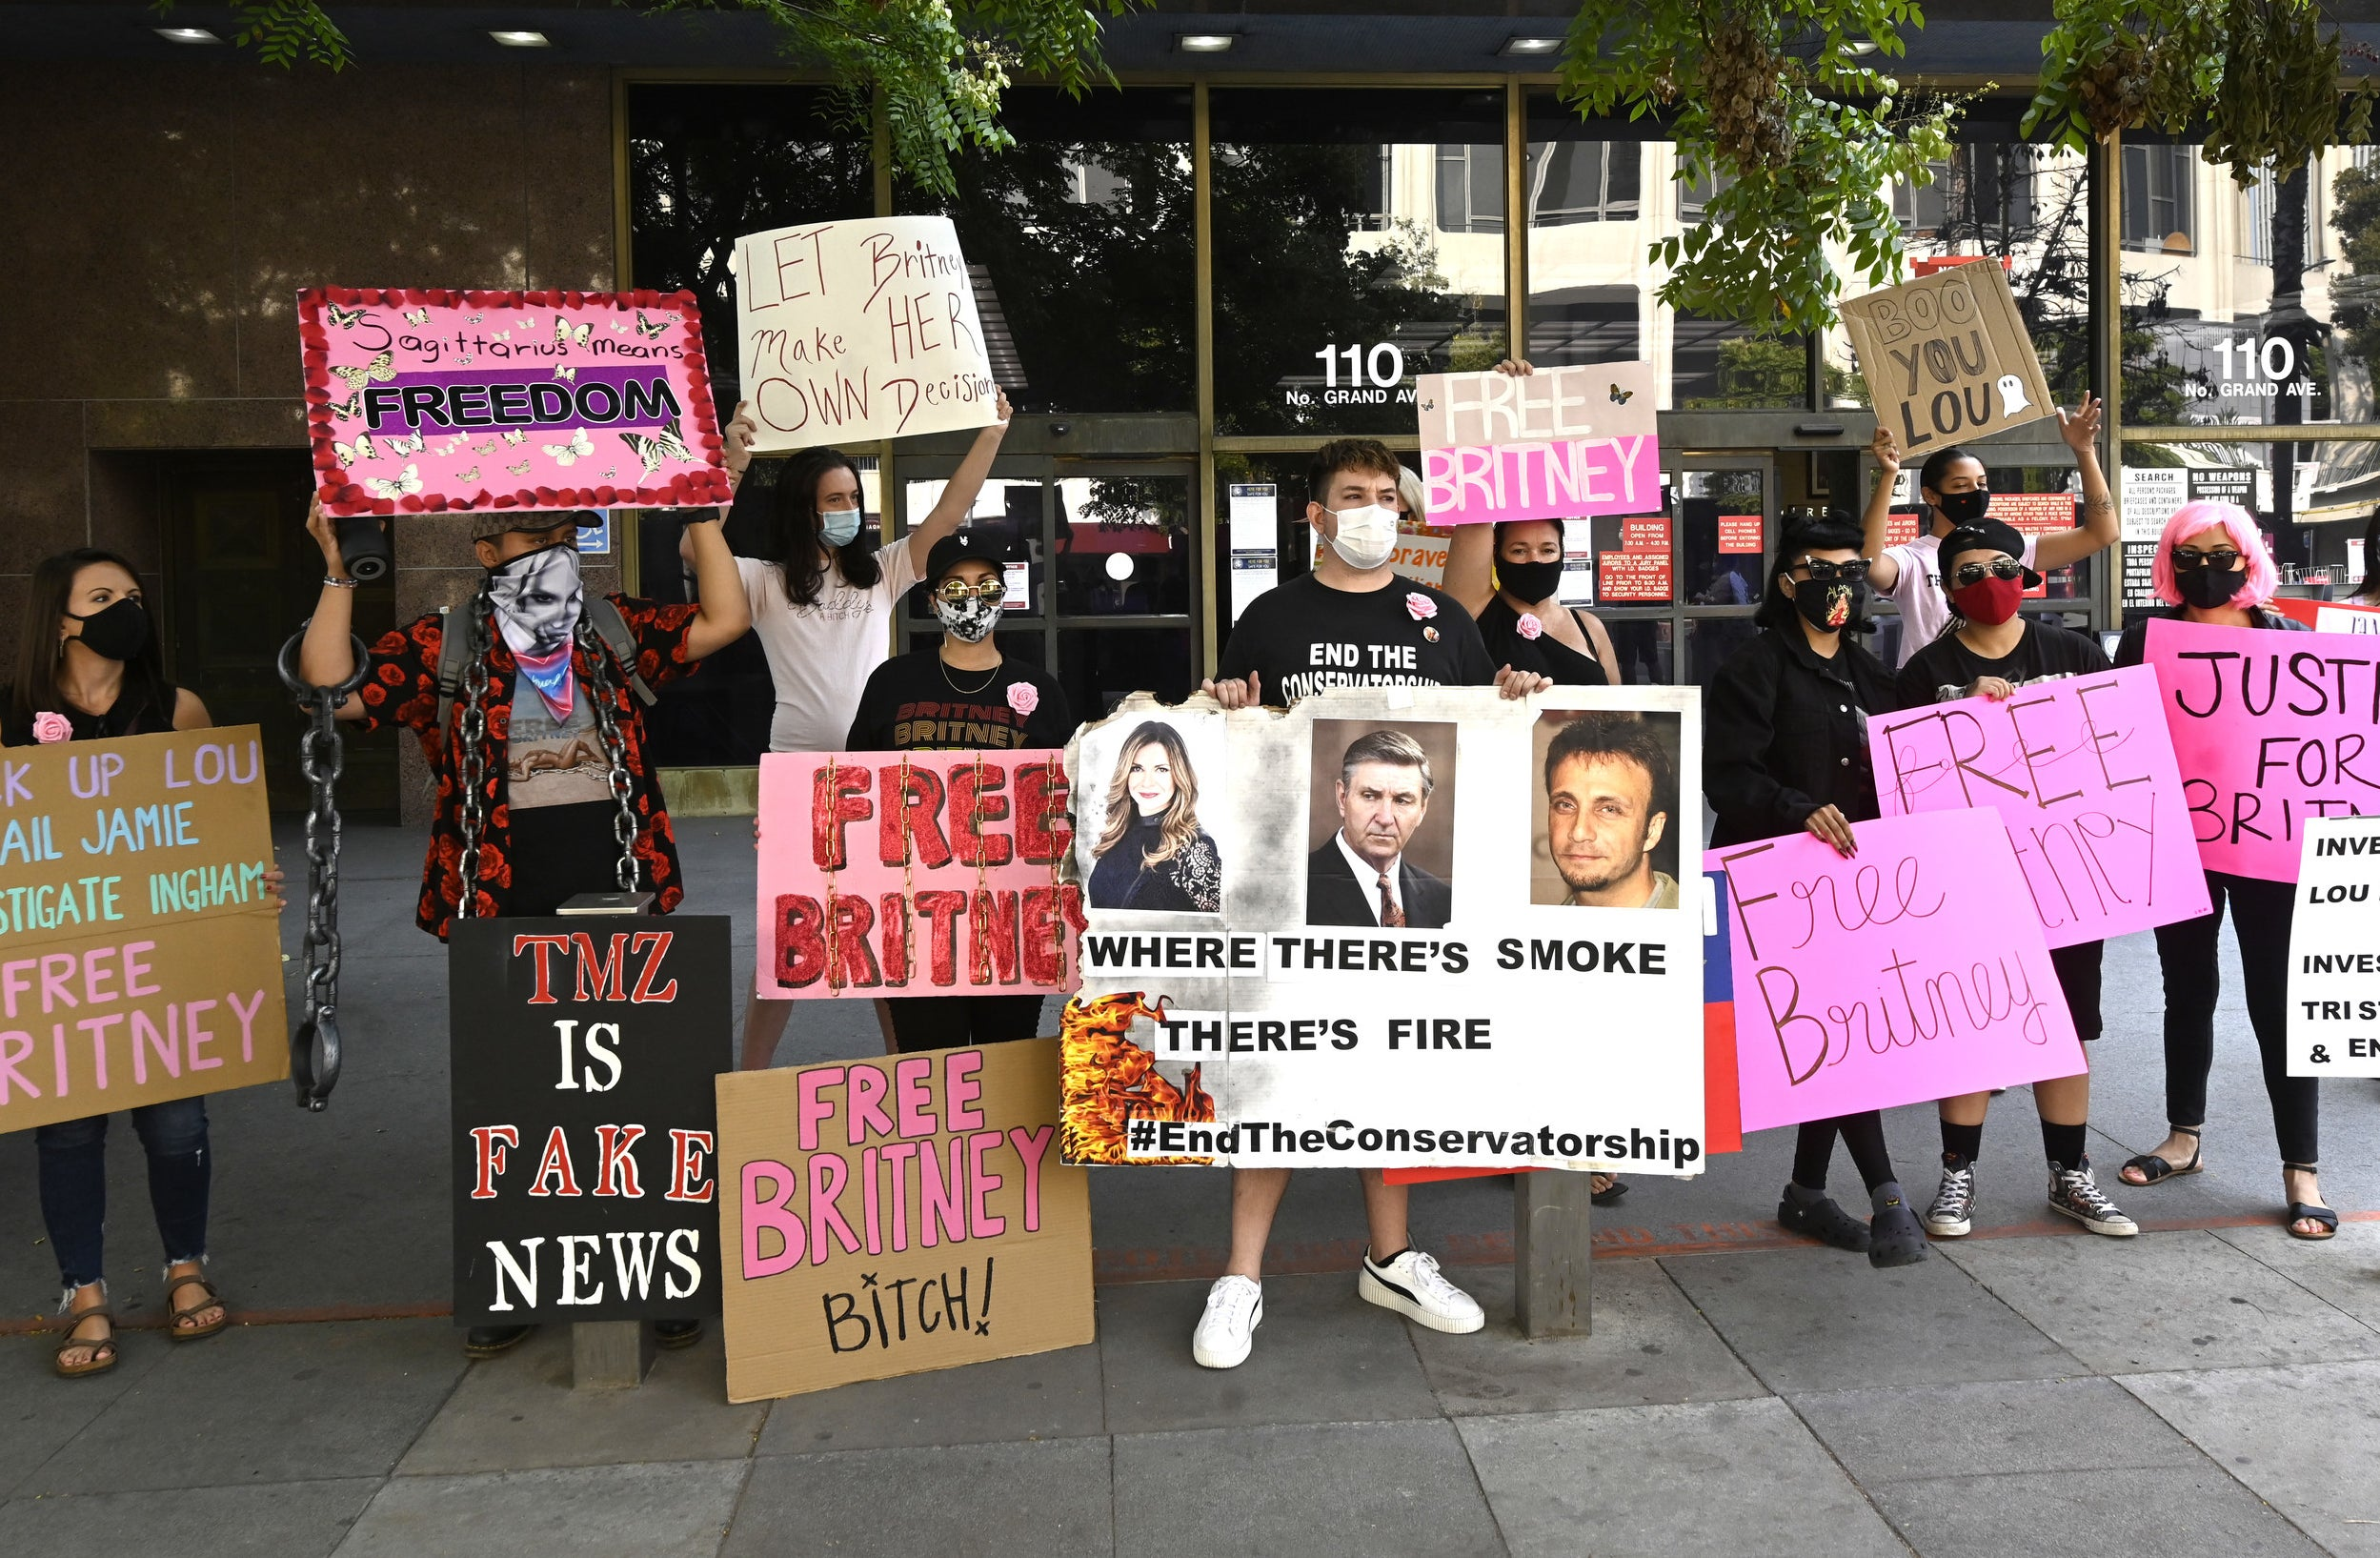 A group of Britney fans hold Free Britney signs outside of a courthouse